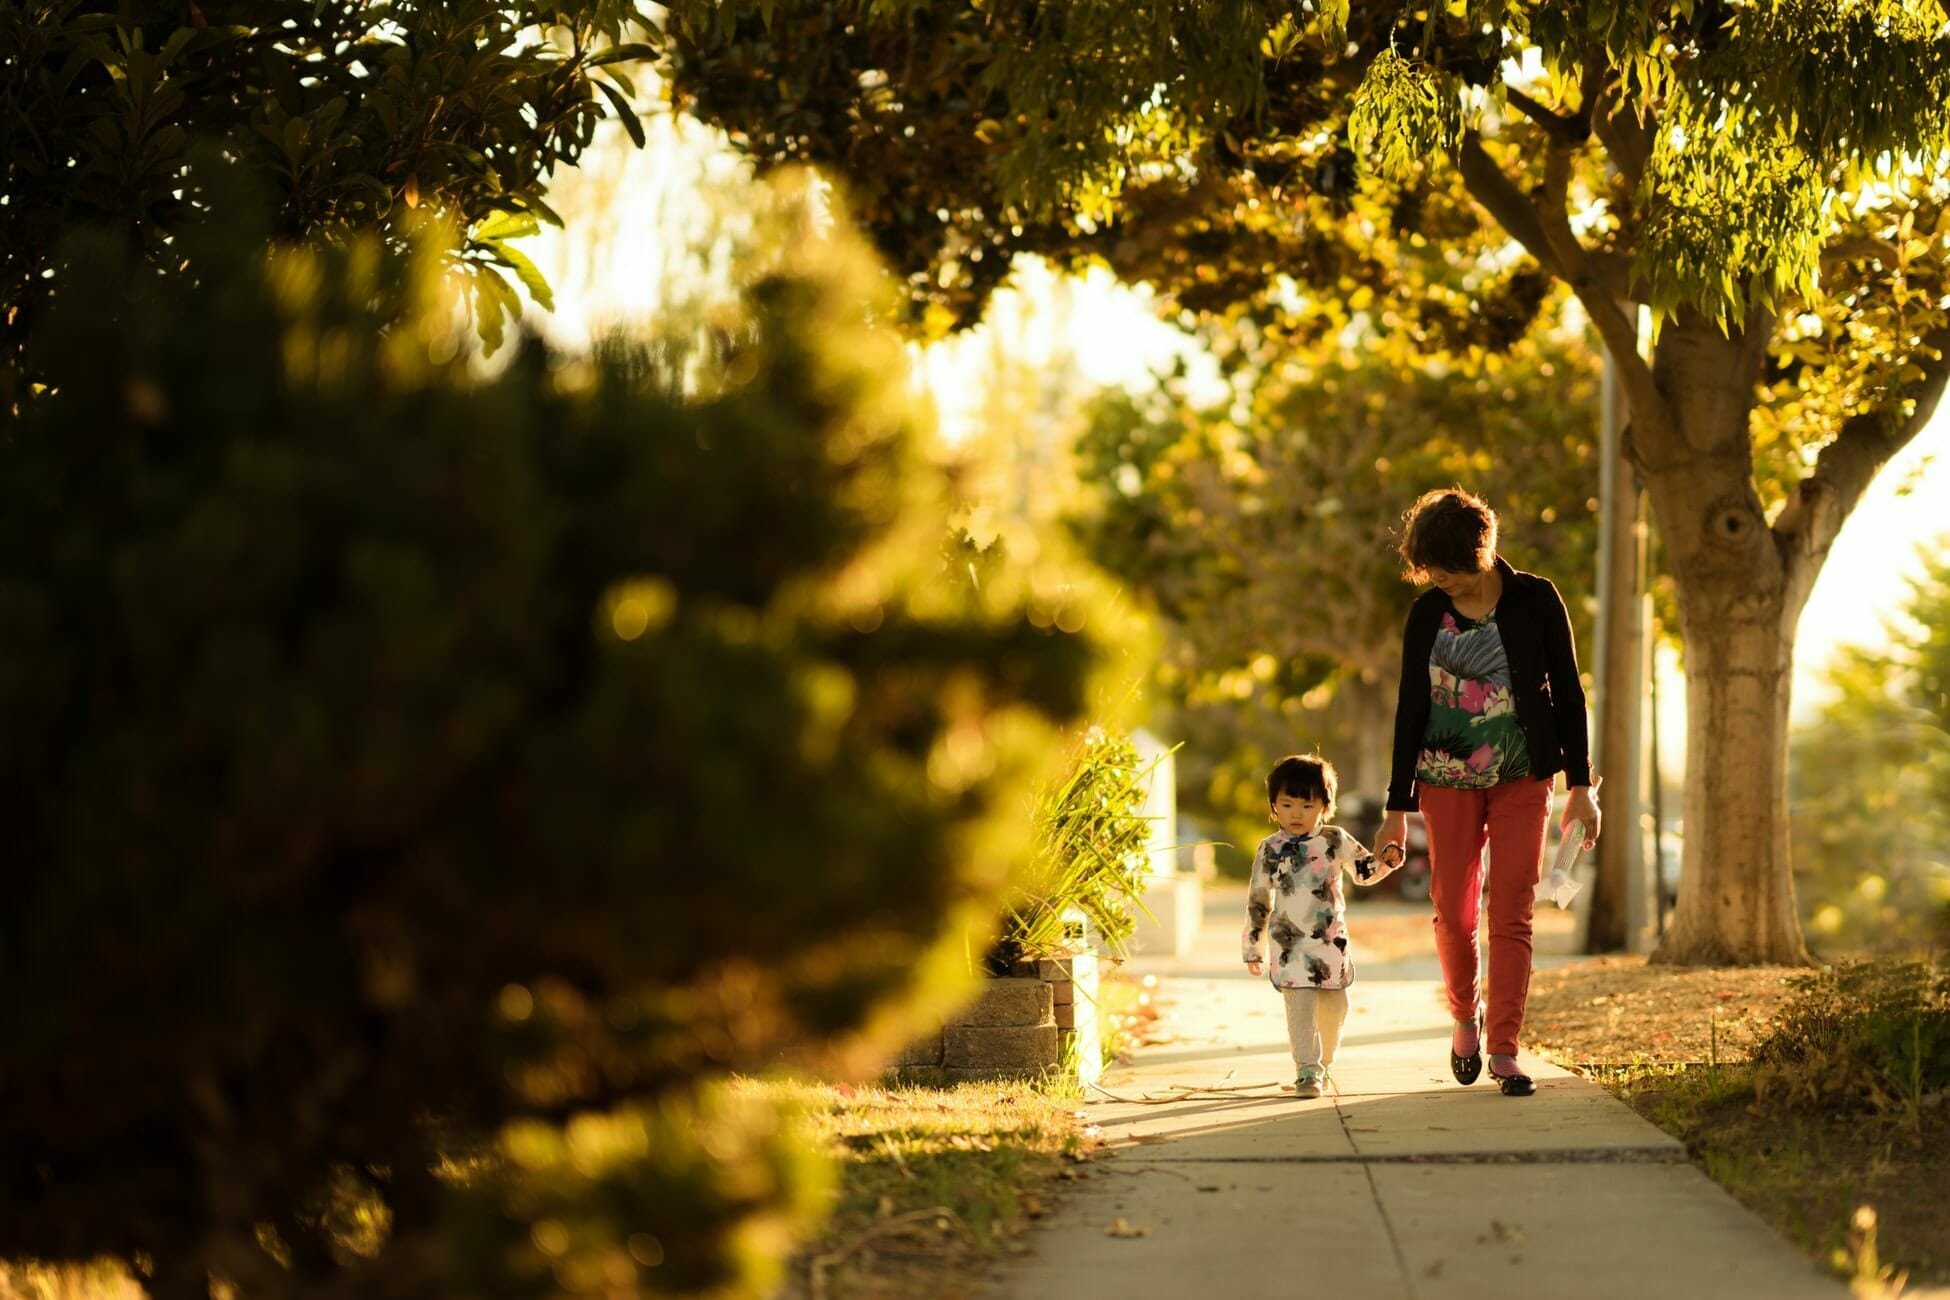 Title IX Reasonable Accommodations - Student Parent Walking with a Child on a Sidewalk